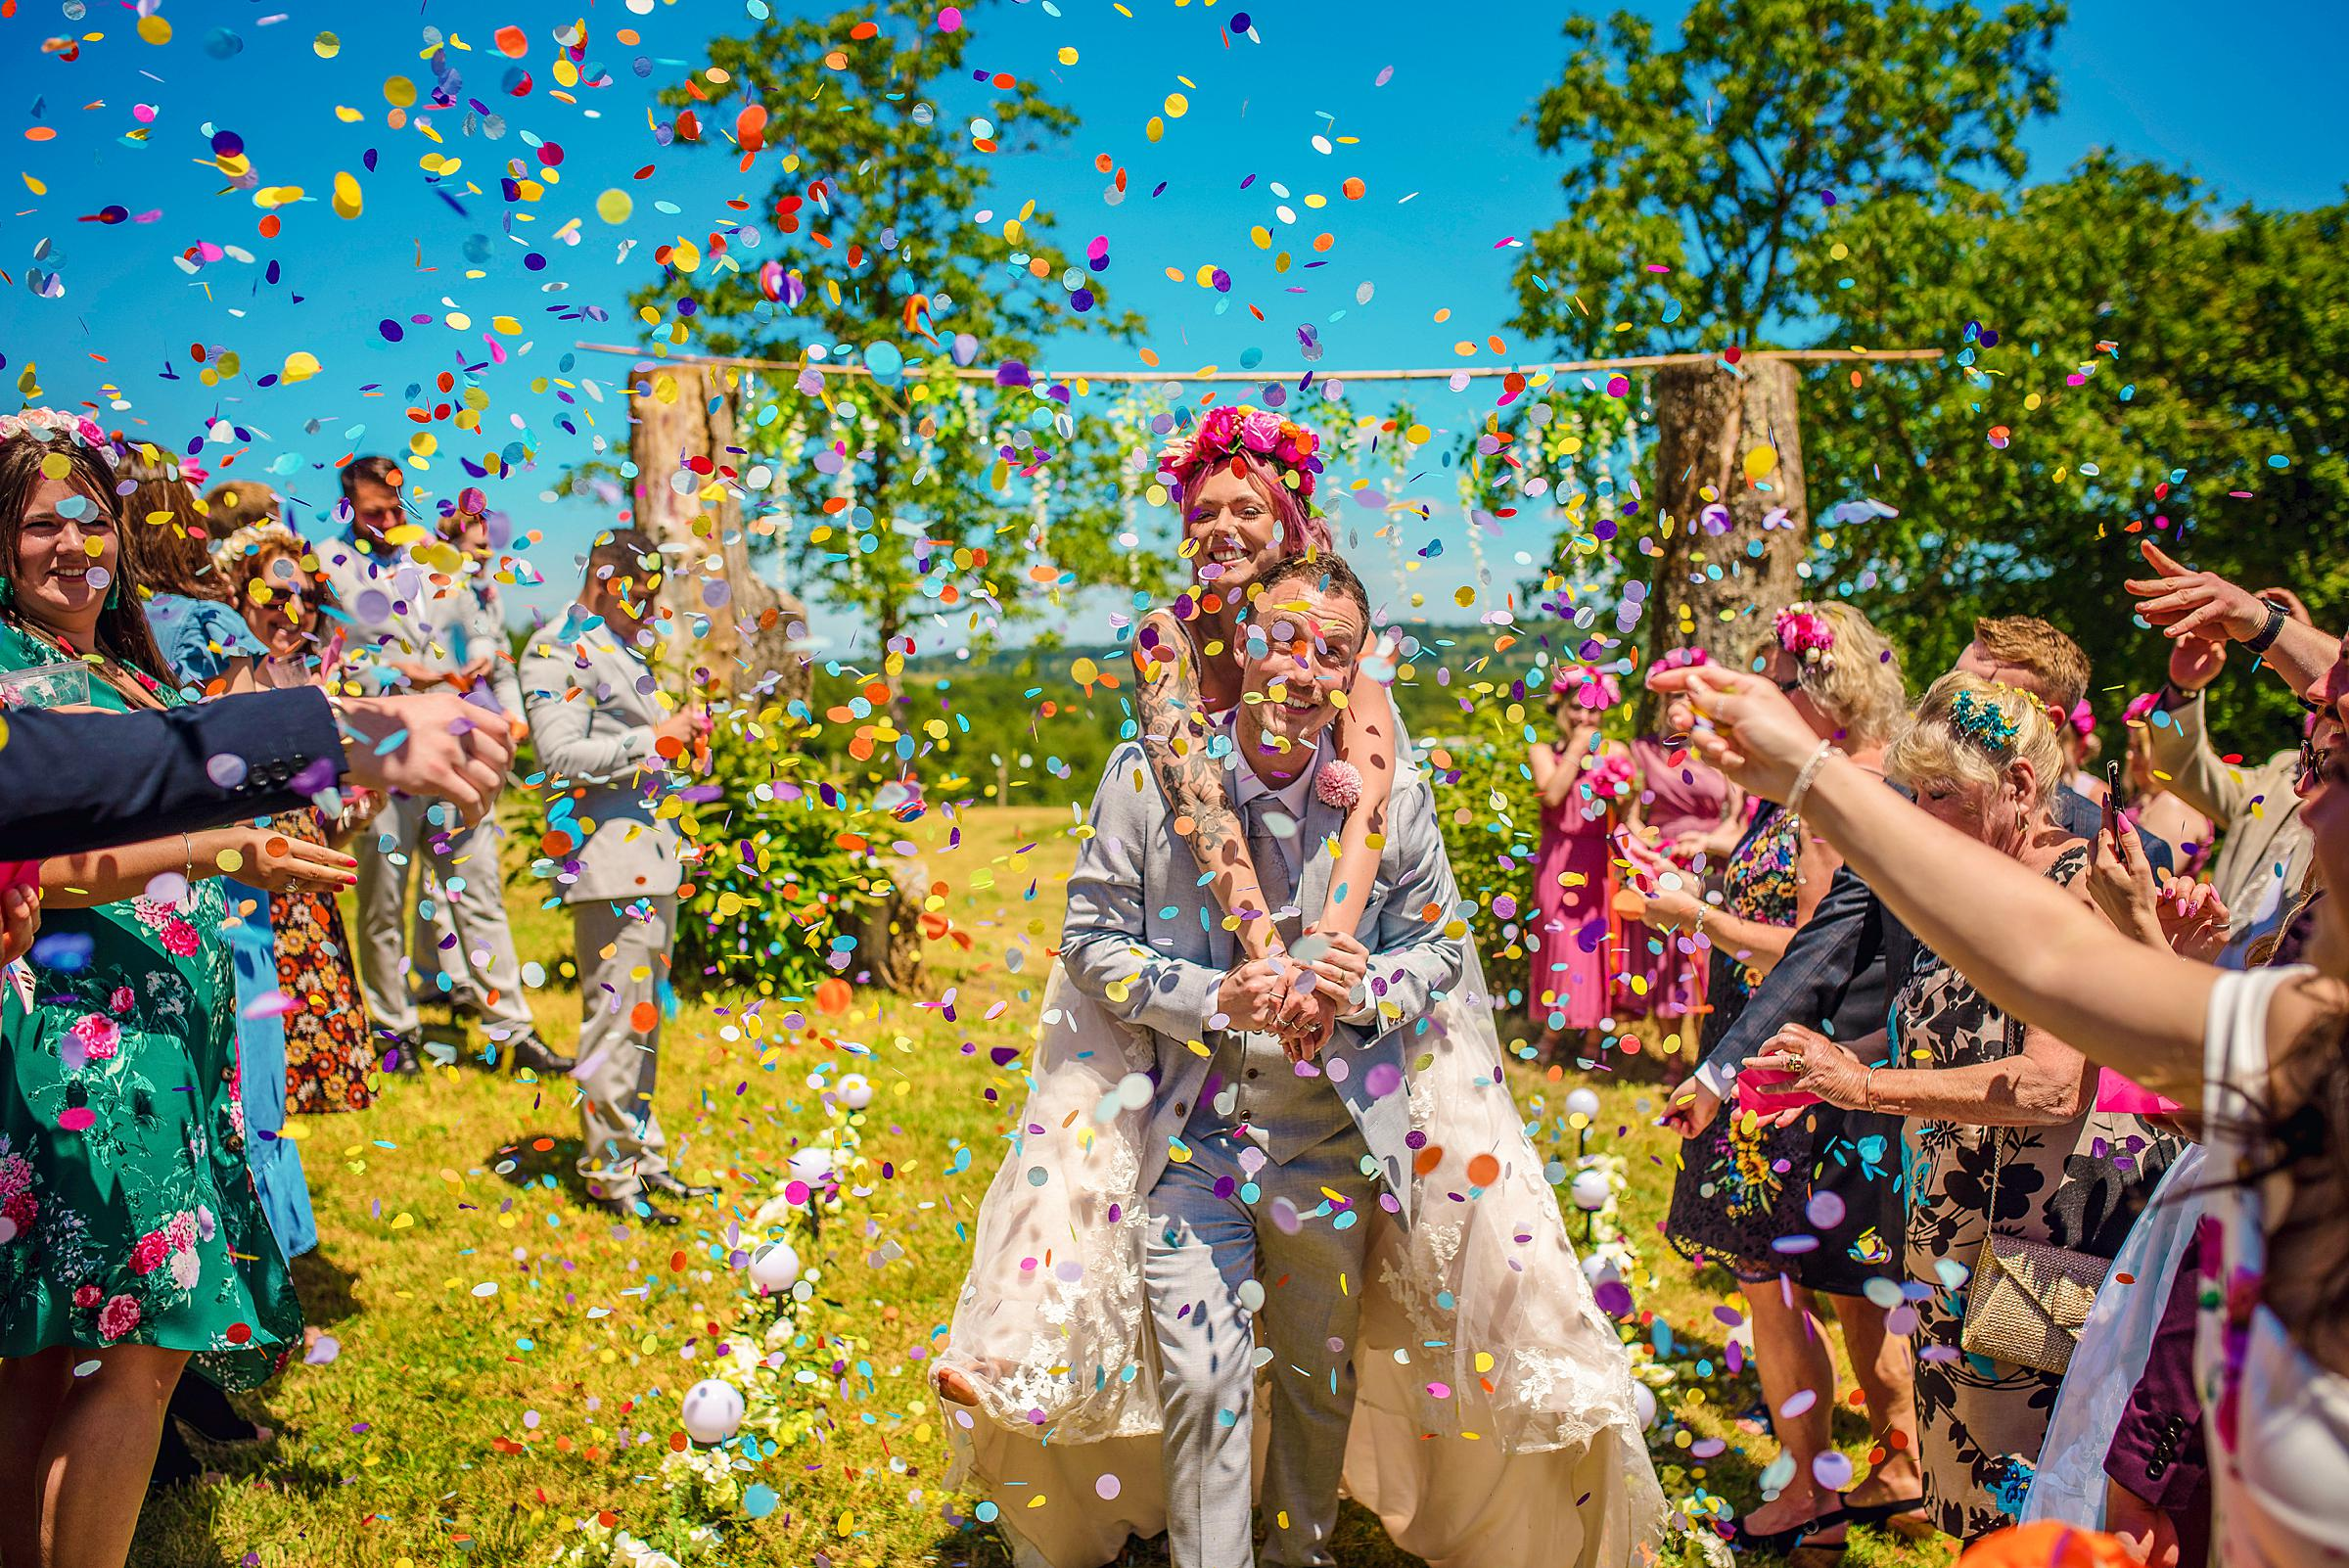 Back Garden Festival Wedding in France Load of Confetti